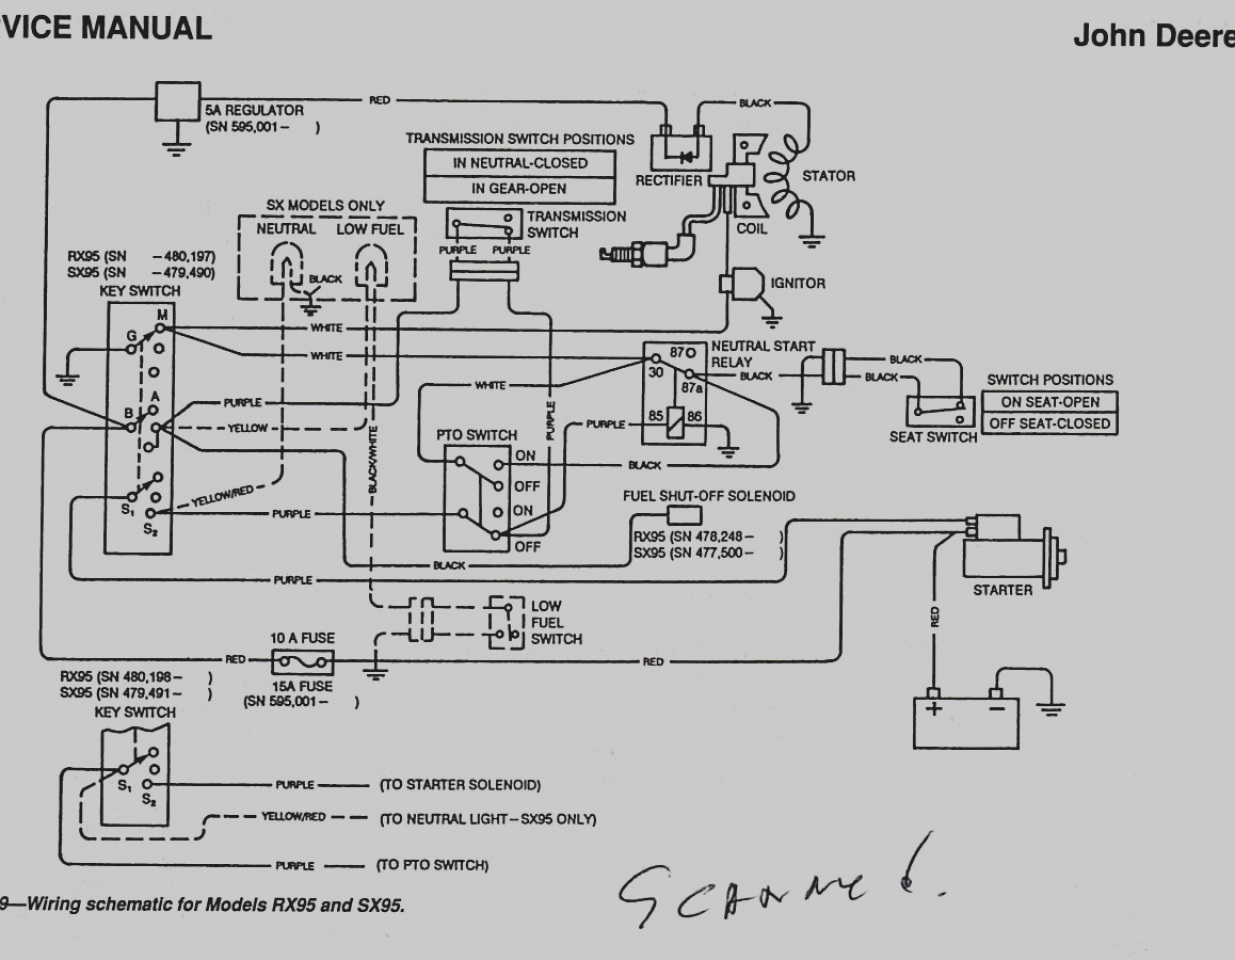 john deere 40 wiring diagram free download john deere generator wiring diagram free download